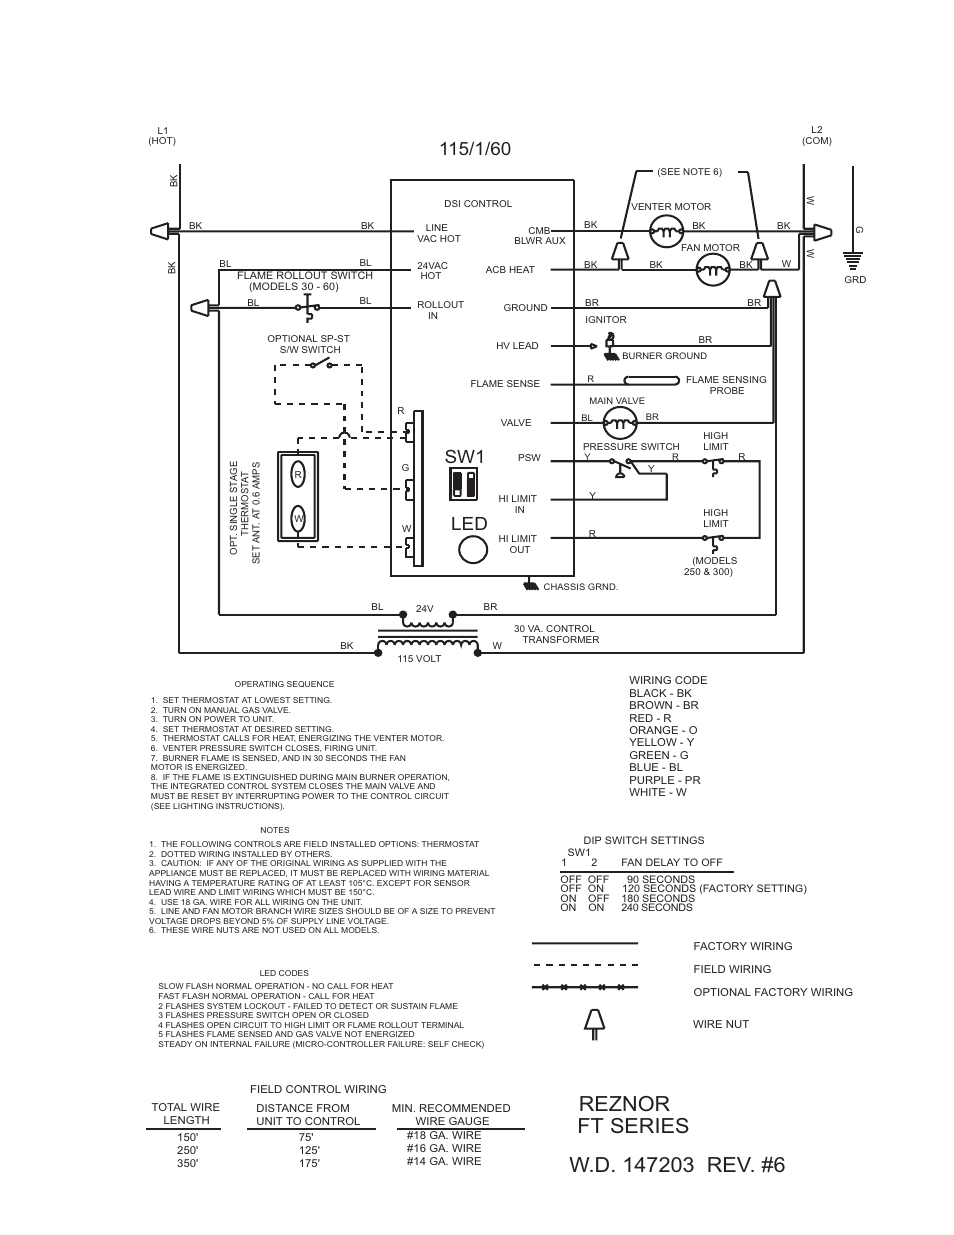 Typical Wiring Diagram  Ft Series Reznor